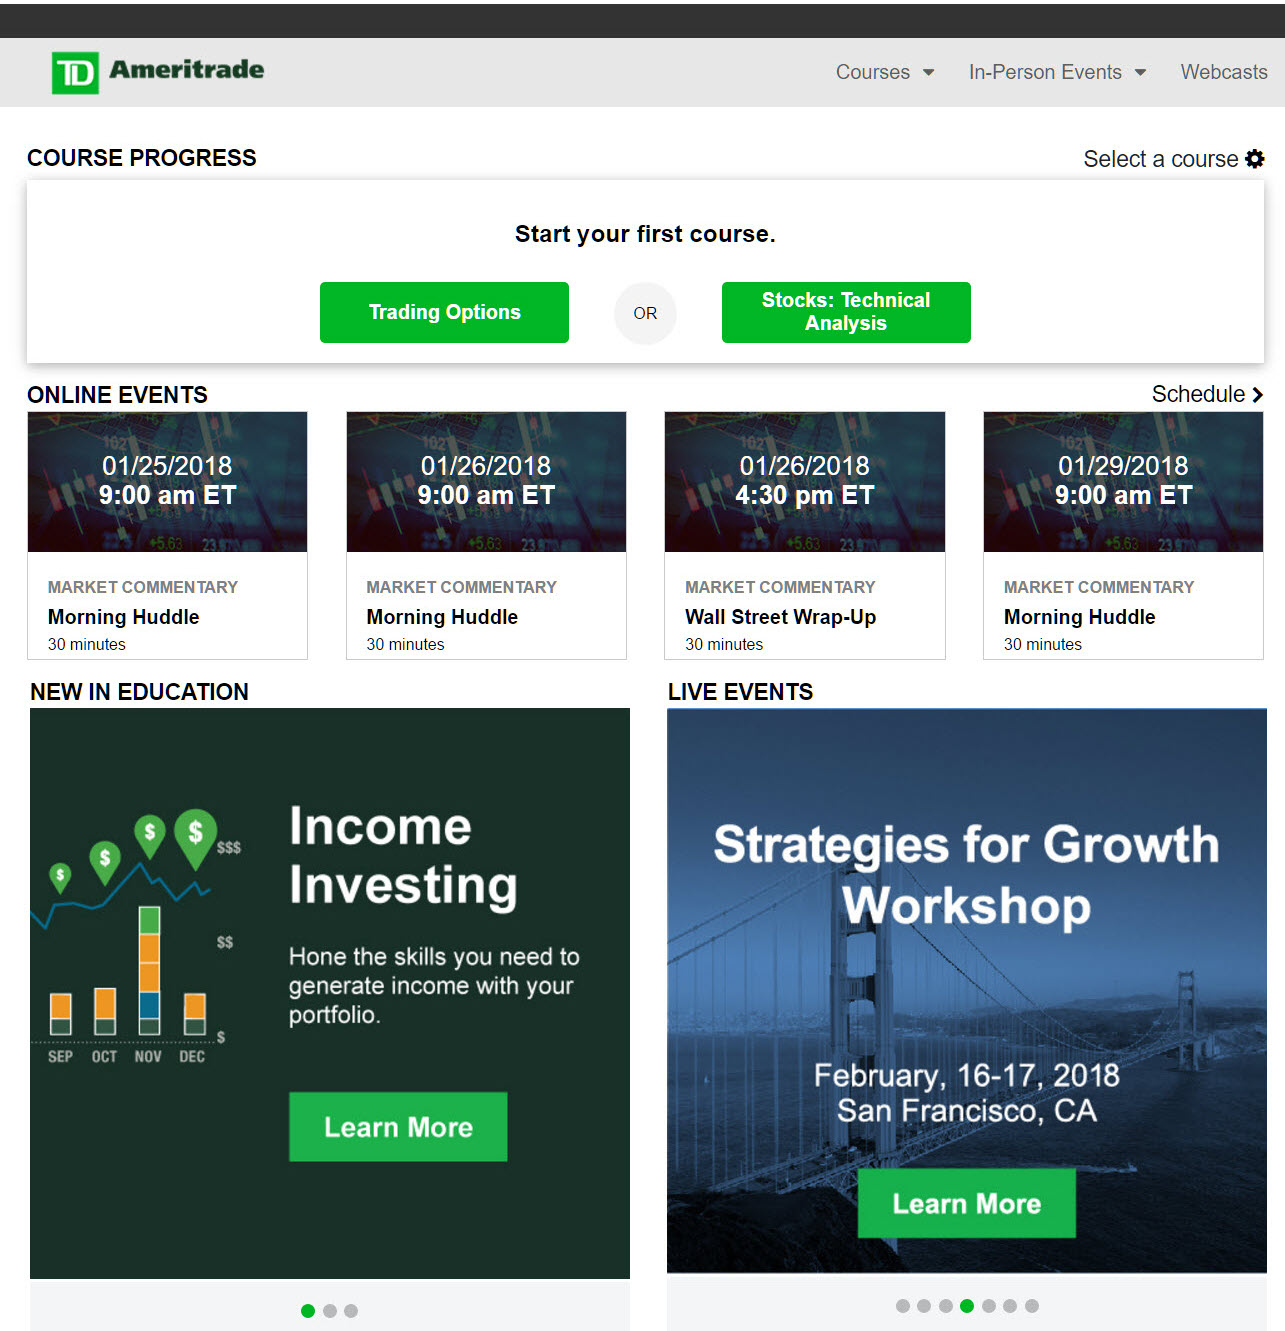 Education for investors and traders from TD Ameritrade